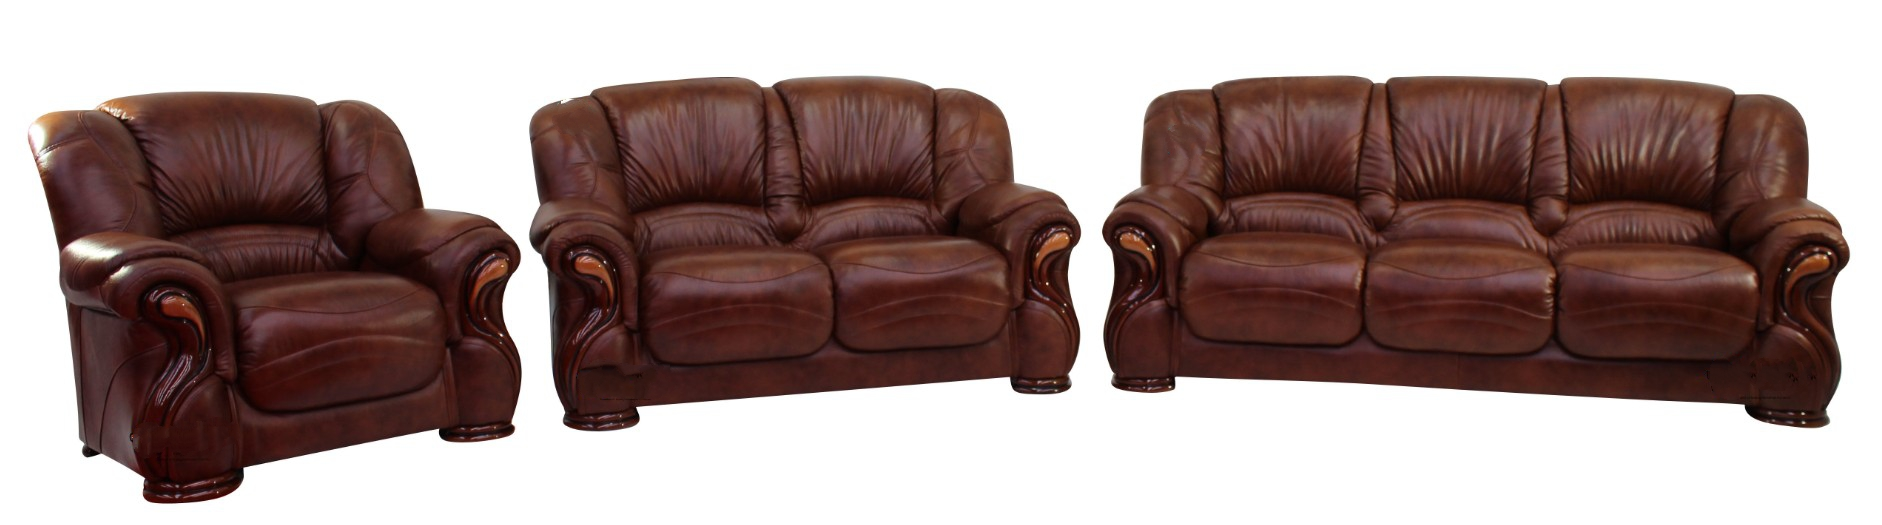 Susanna 3 2 1 italian leather sofa suite tabak brown offer leather sofas fabric sofas Italian leather sofa uk